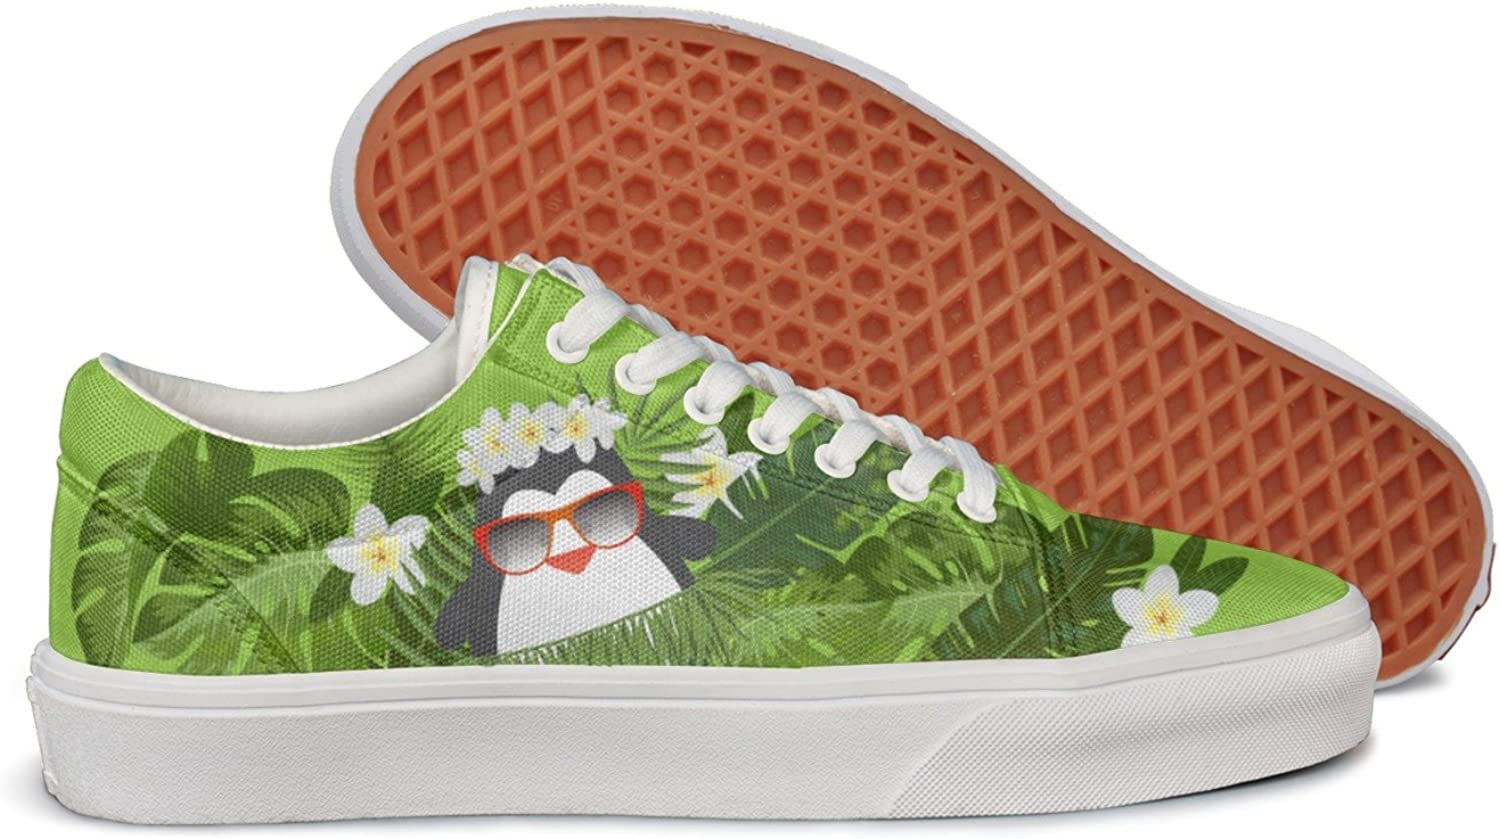 Milr Gile Hawaii Holiday Penguin Print Sneaker Flat Canvas shoes for Womens Stylish